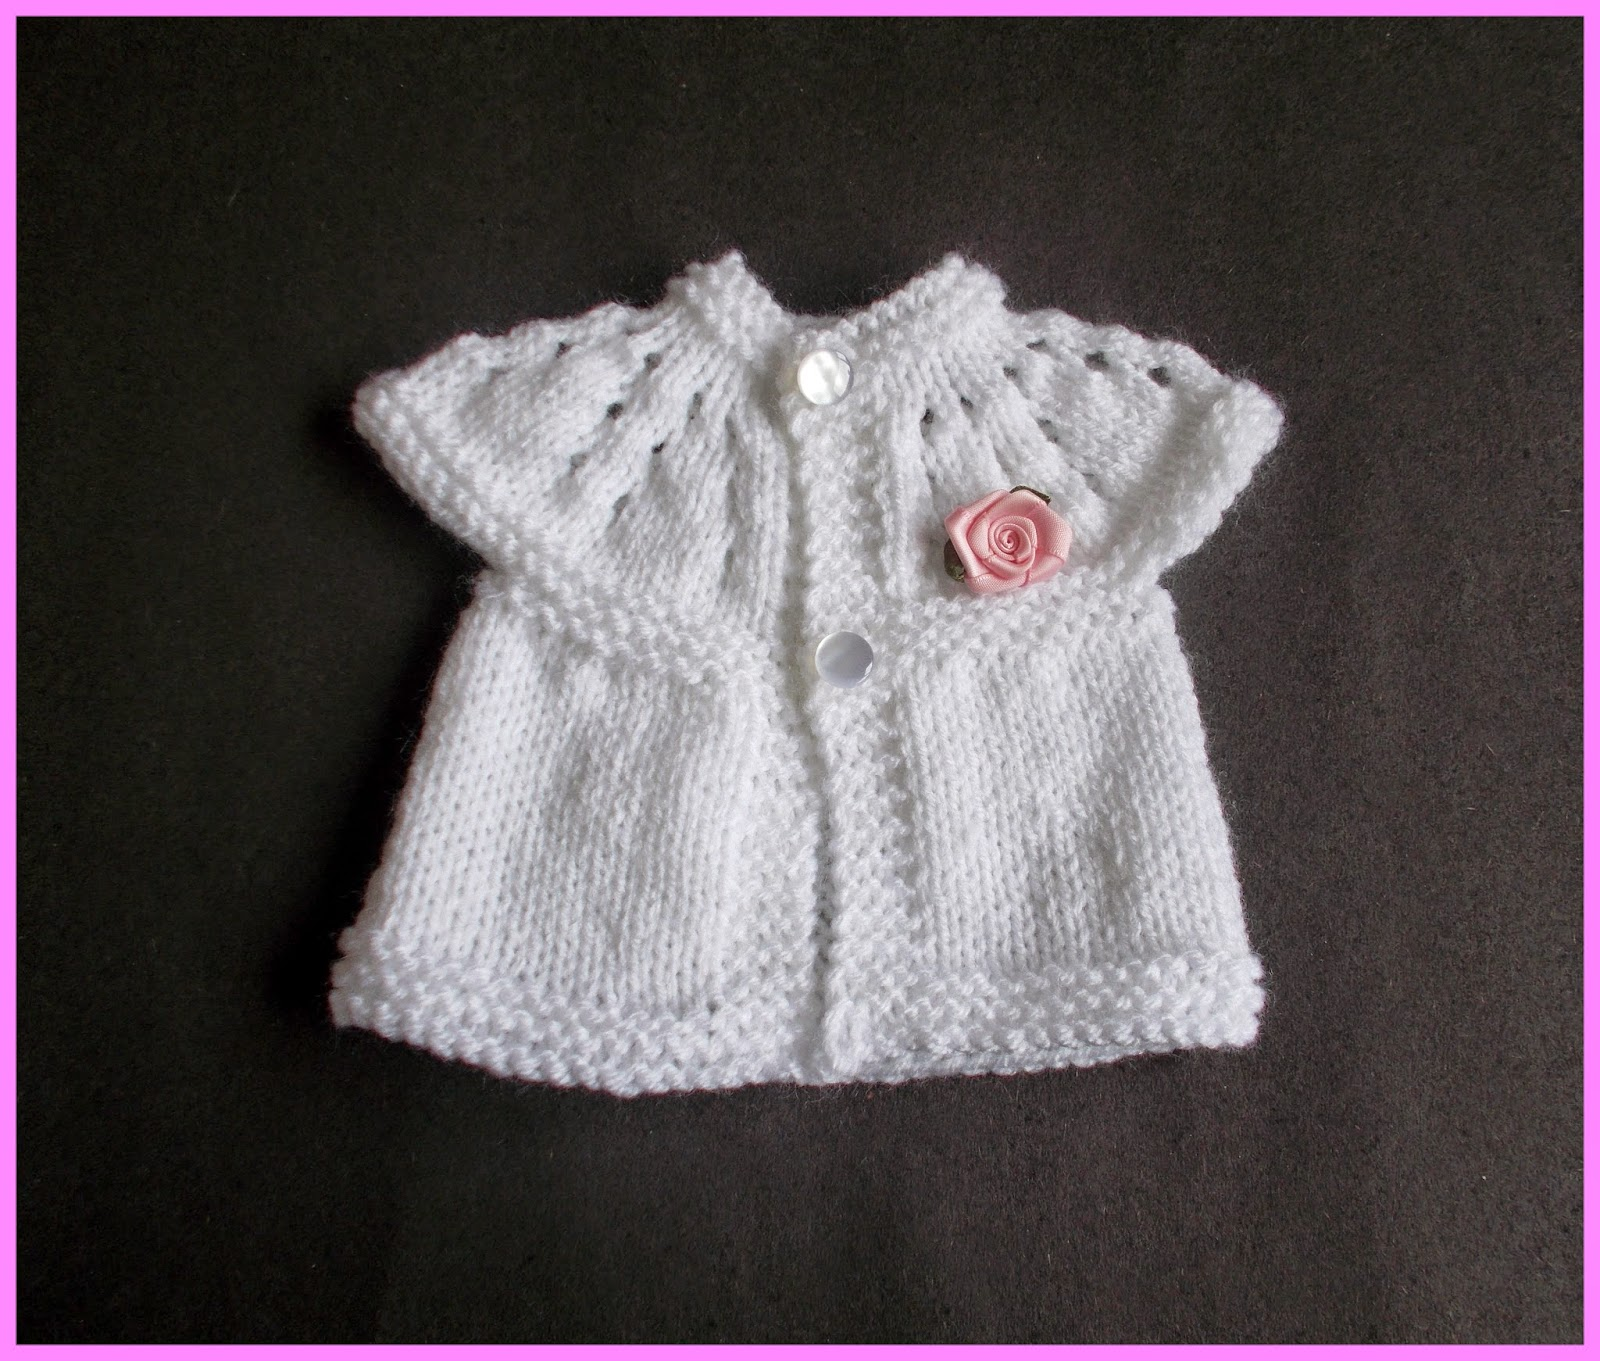 Top Down Baby Sweater Knitting Patterns Easier - To Adjust Fit and Size